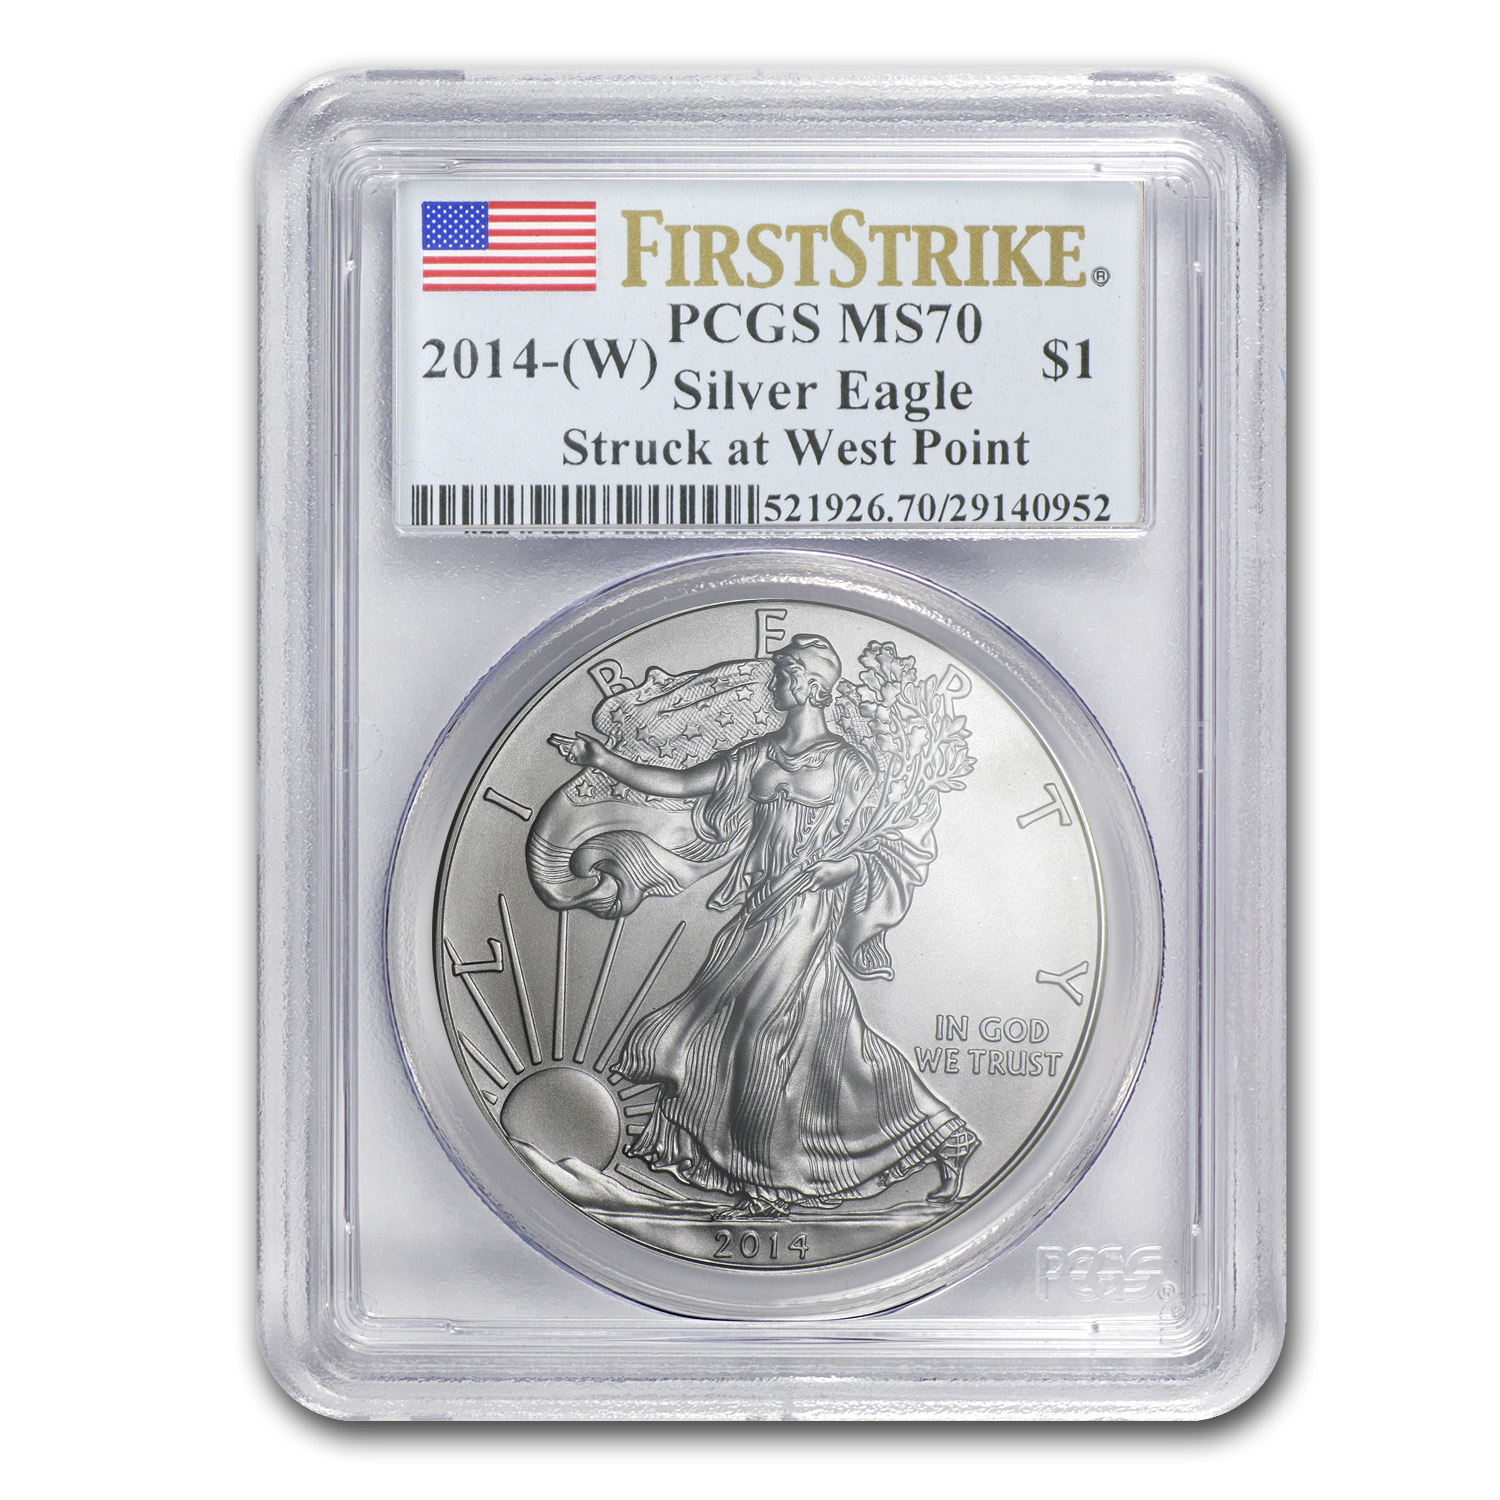 2014 6-Coin Silver American Eagle Set MS-69/70 PCGS (1st Strike)